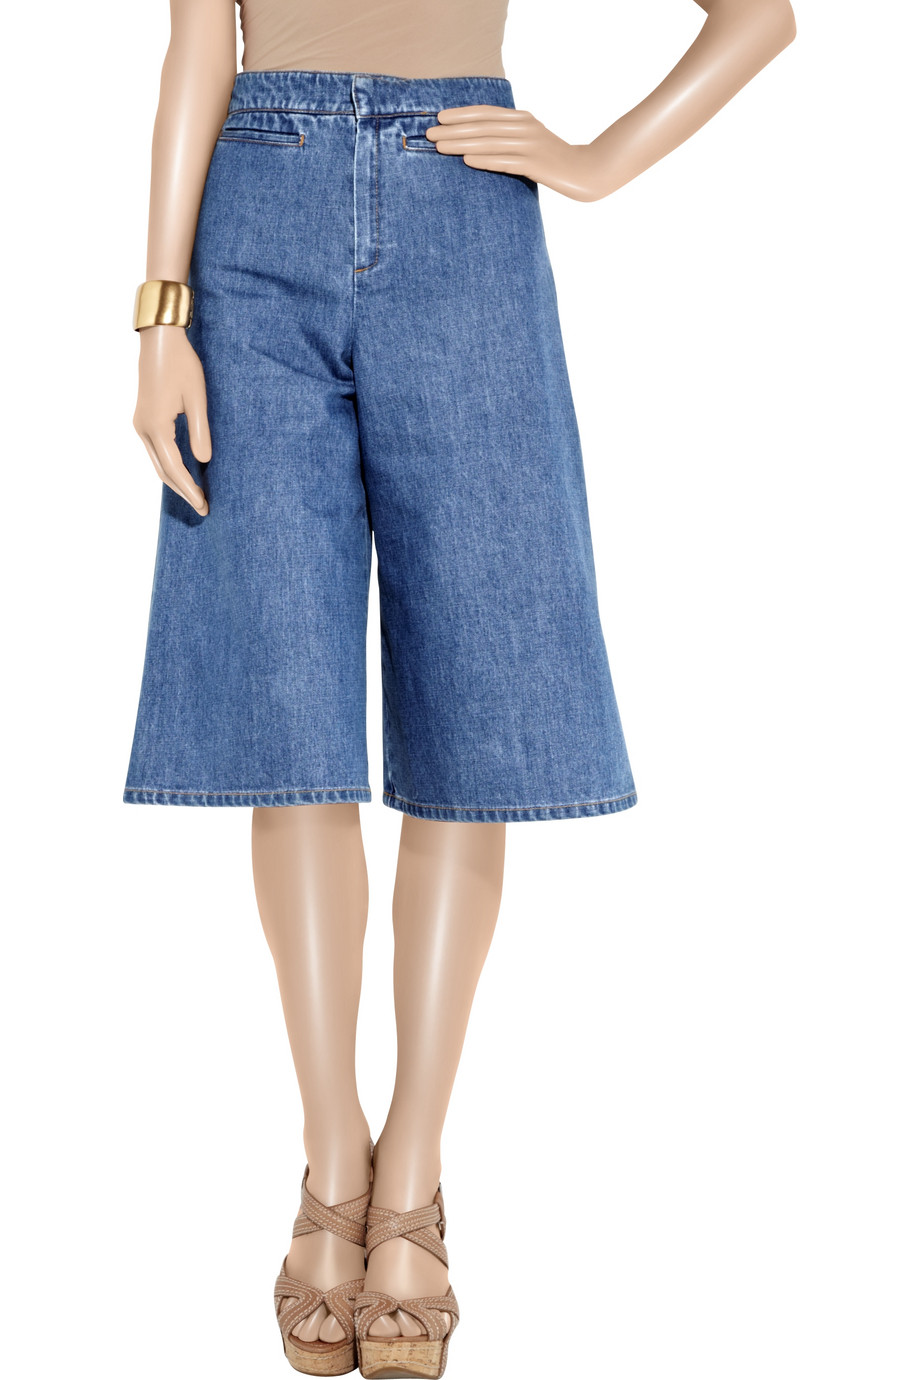 Stella mccartney Mid-rise Wide-leg Denim Shorts in Blue | Lyst